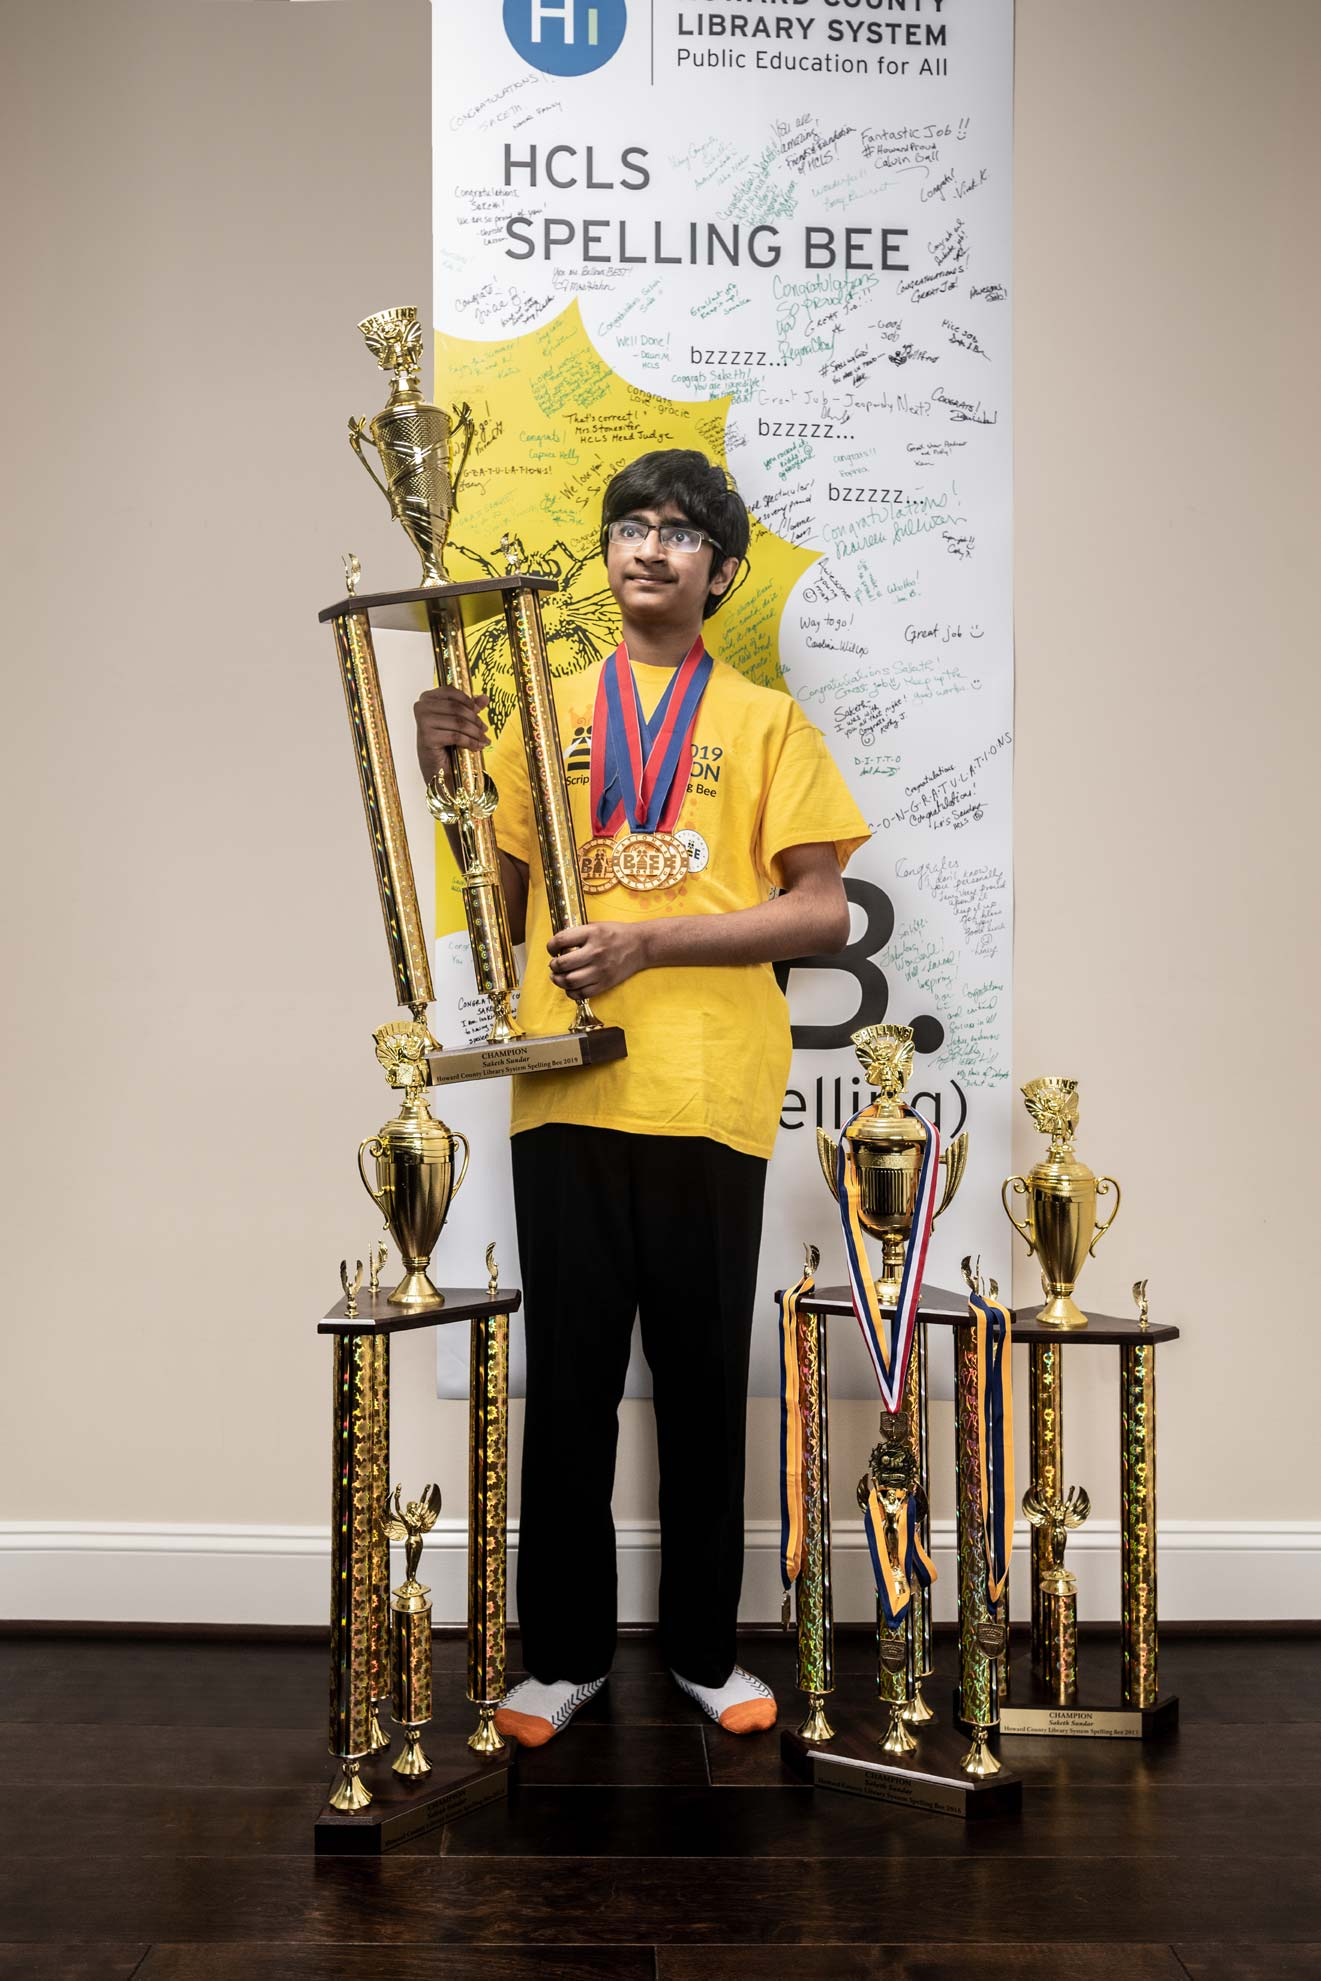 Scripps National Spelling Bee champion Saketh Sundar